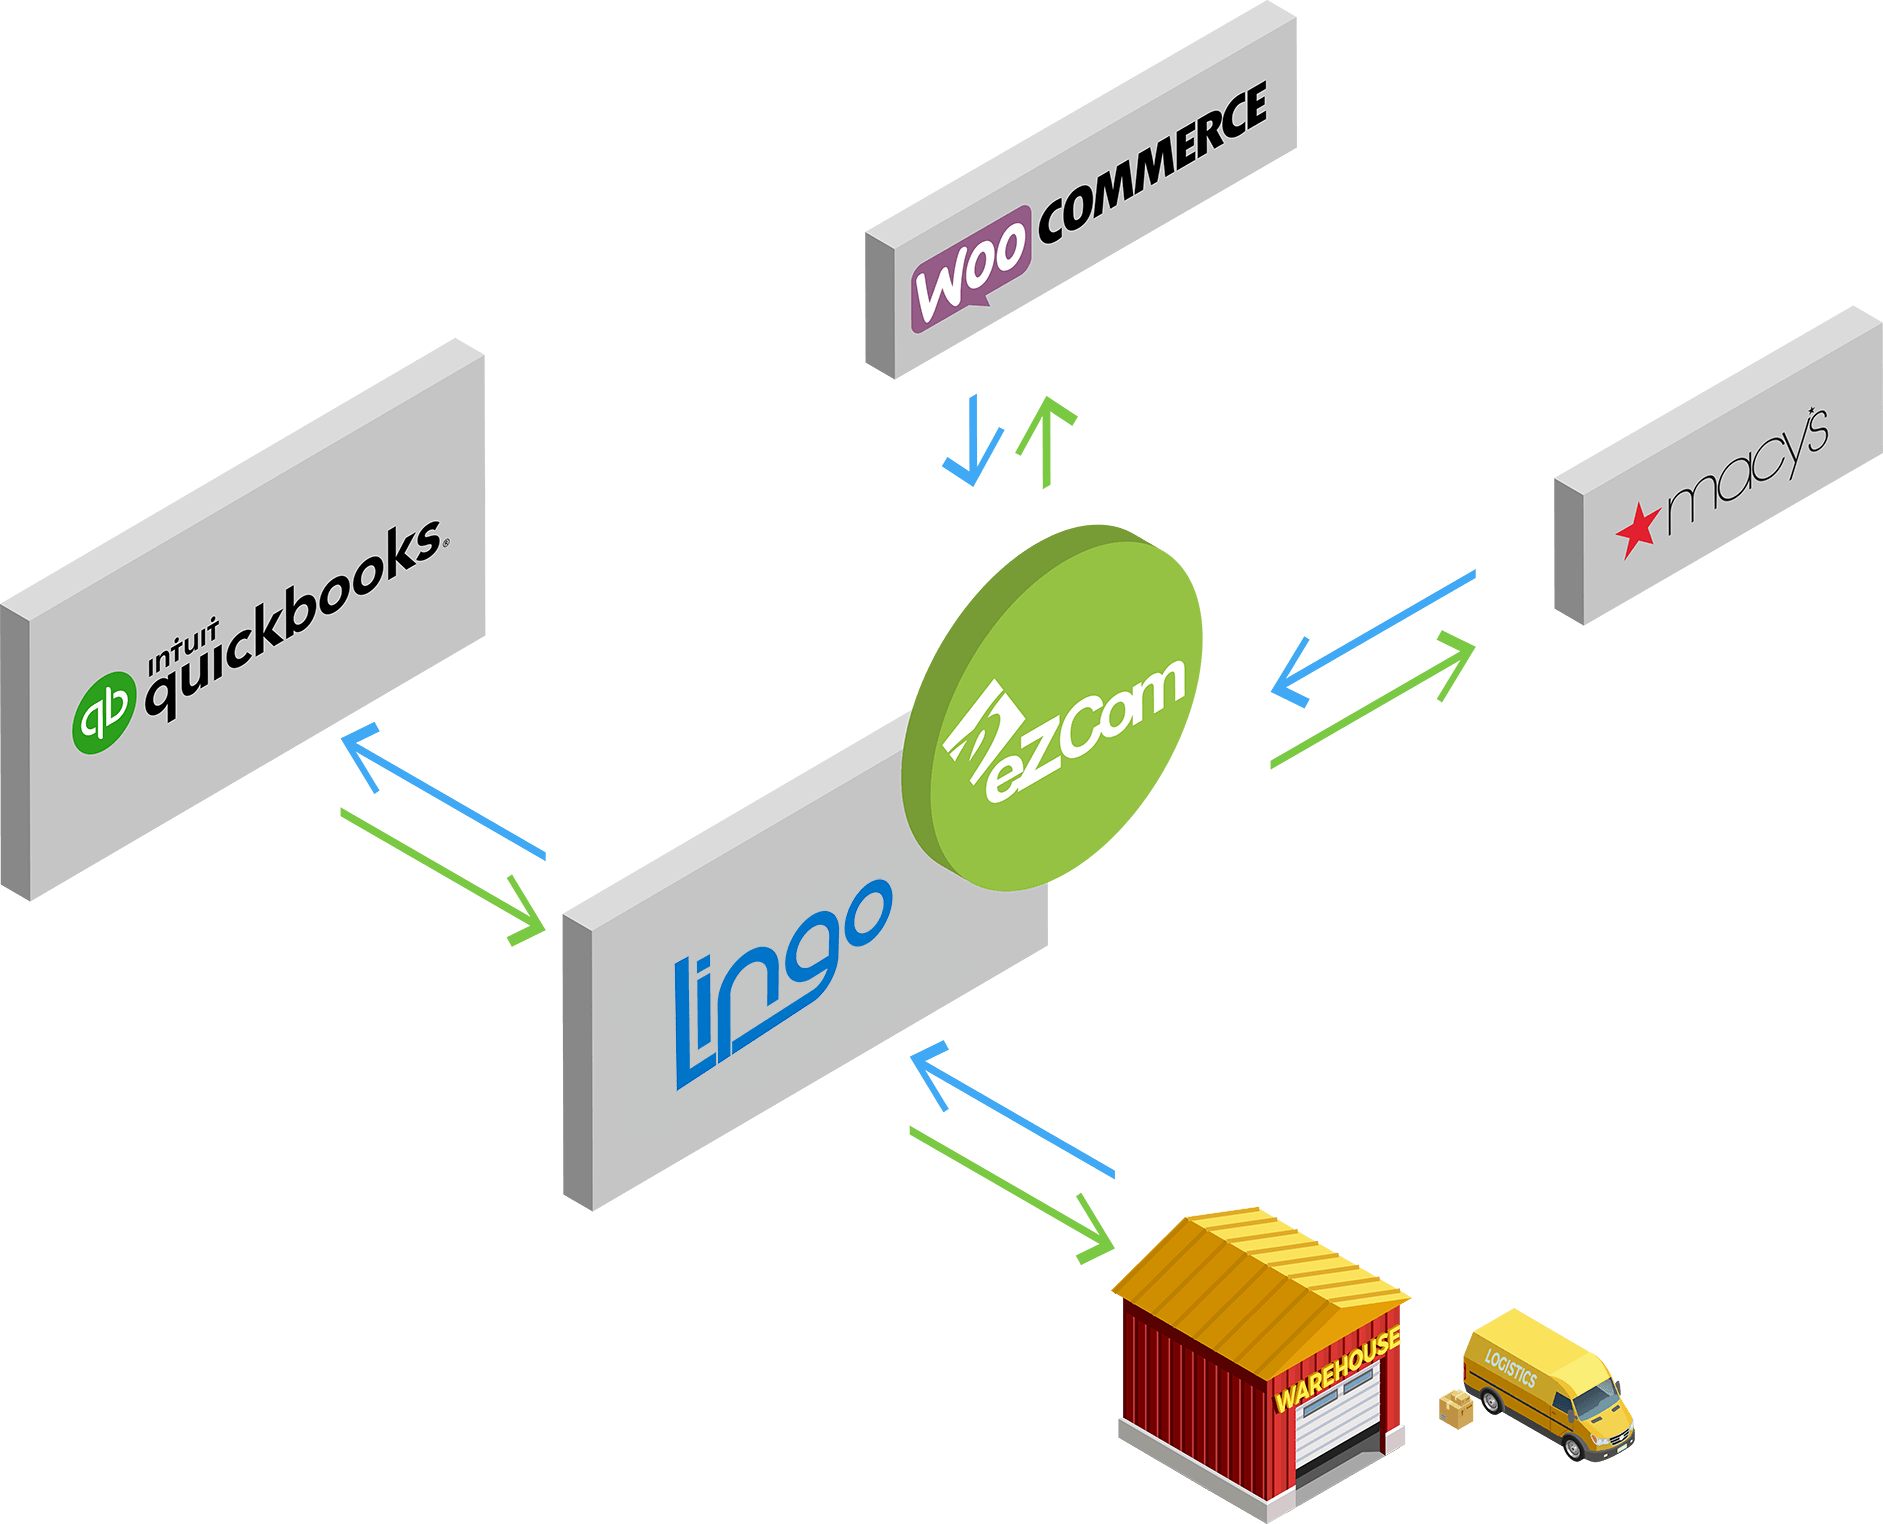 eZCom Connects to Retial, eCommerce, QuickBooks, and 3PLs